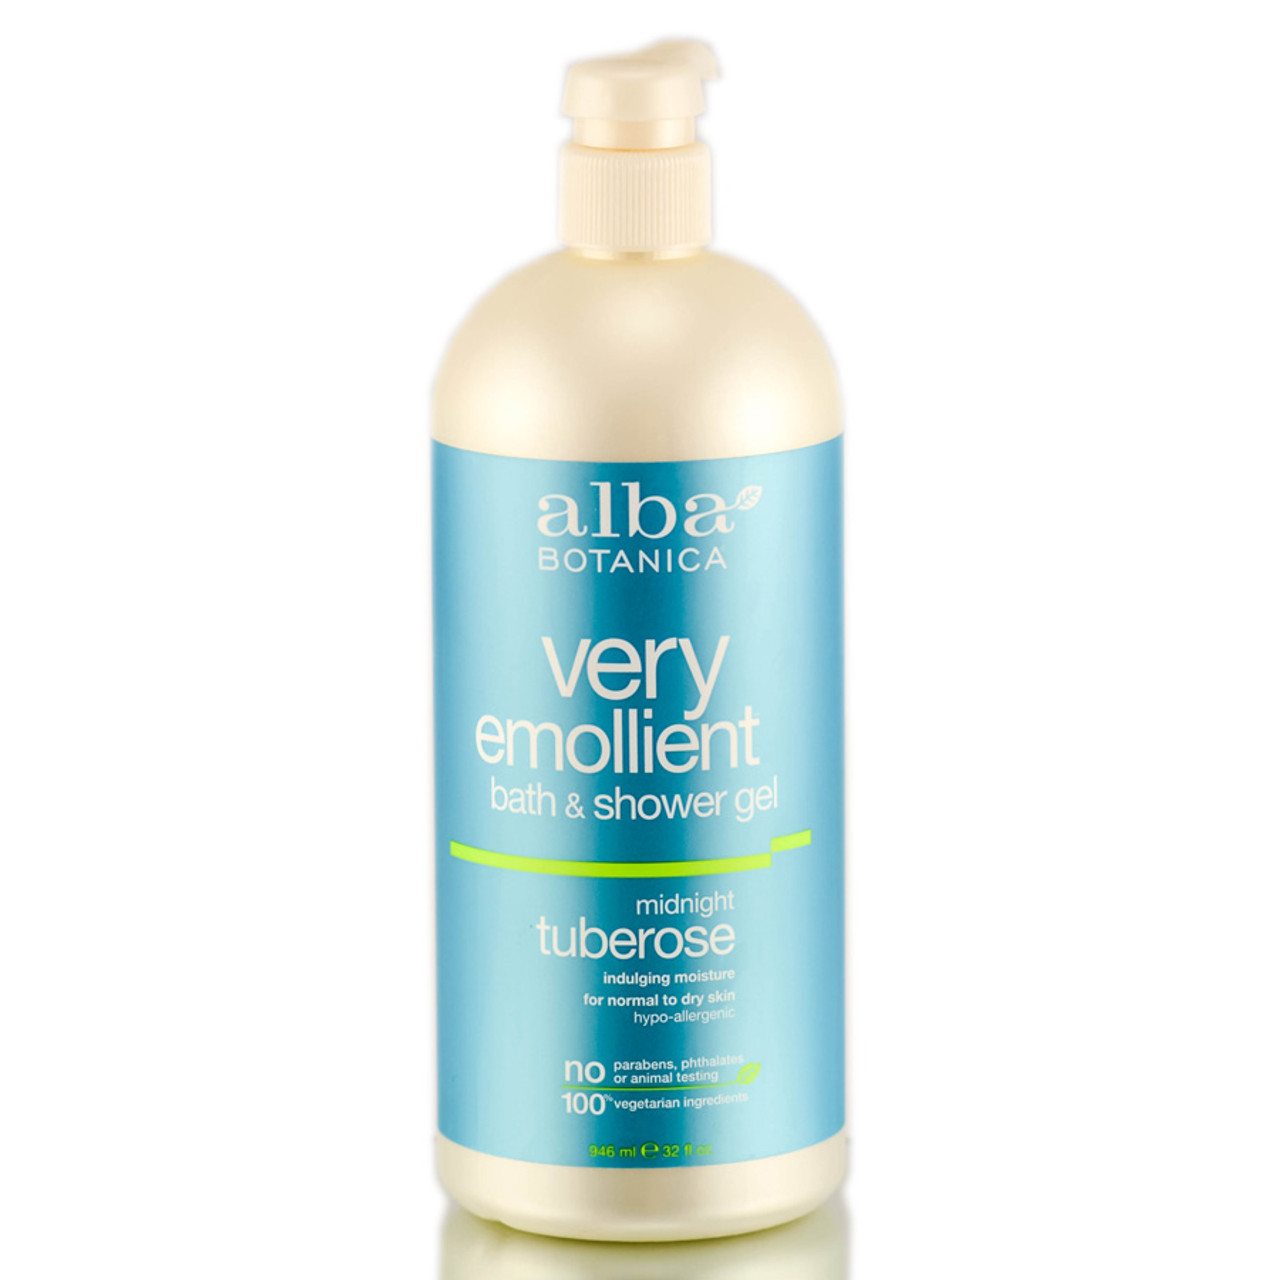 Are Alba Botanica Products Natural